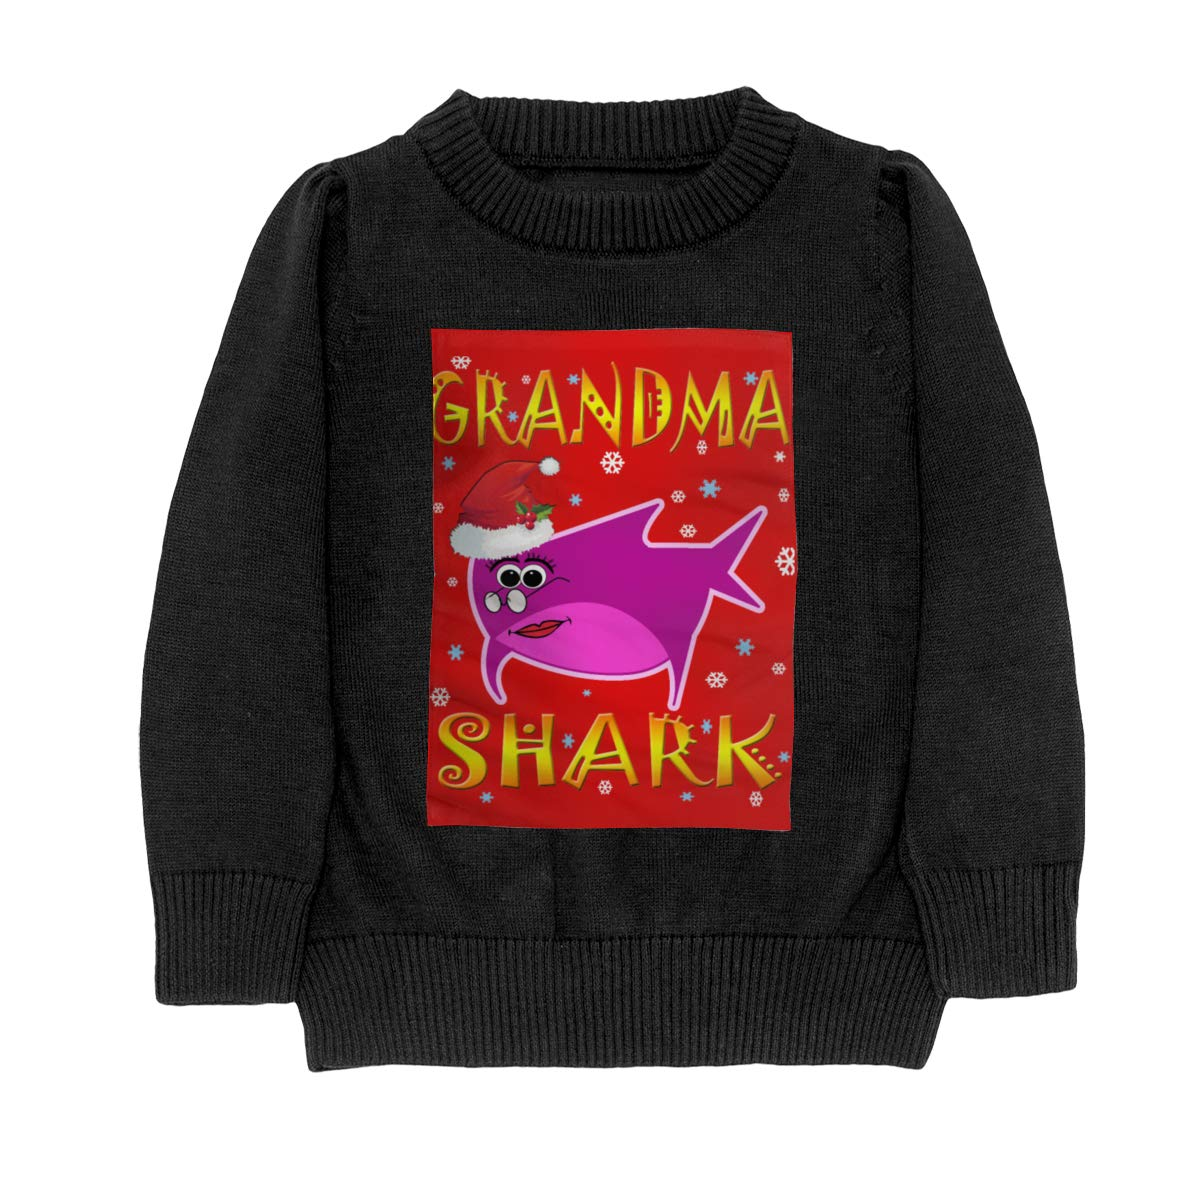 Grandma Shark Knit Sweater Pullover for Youth Girls